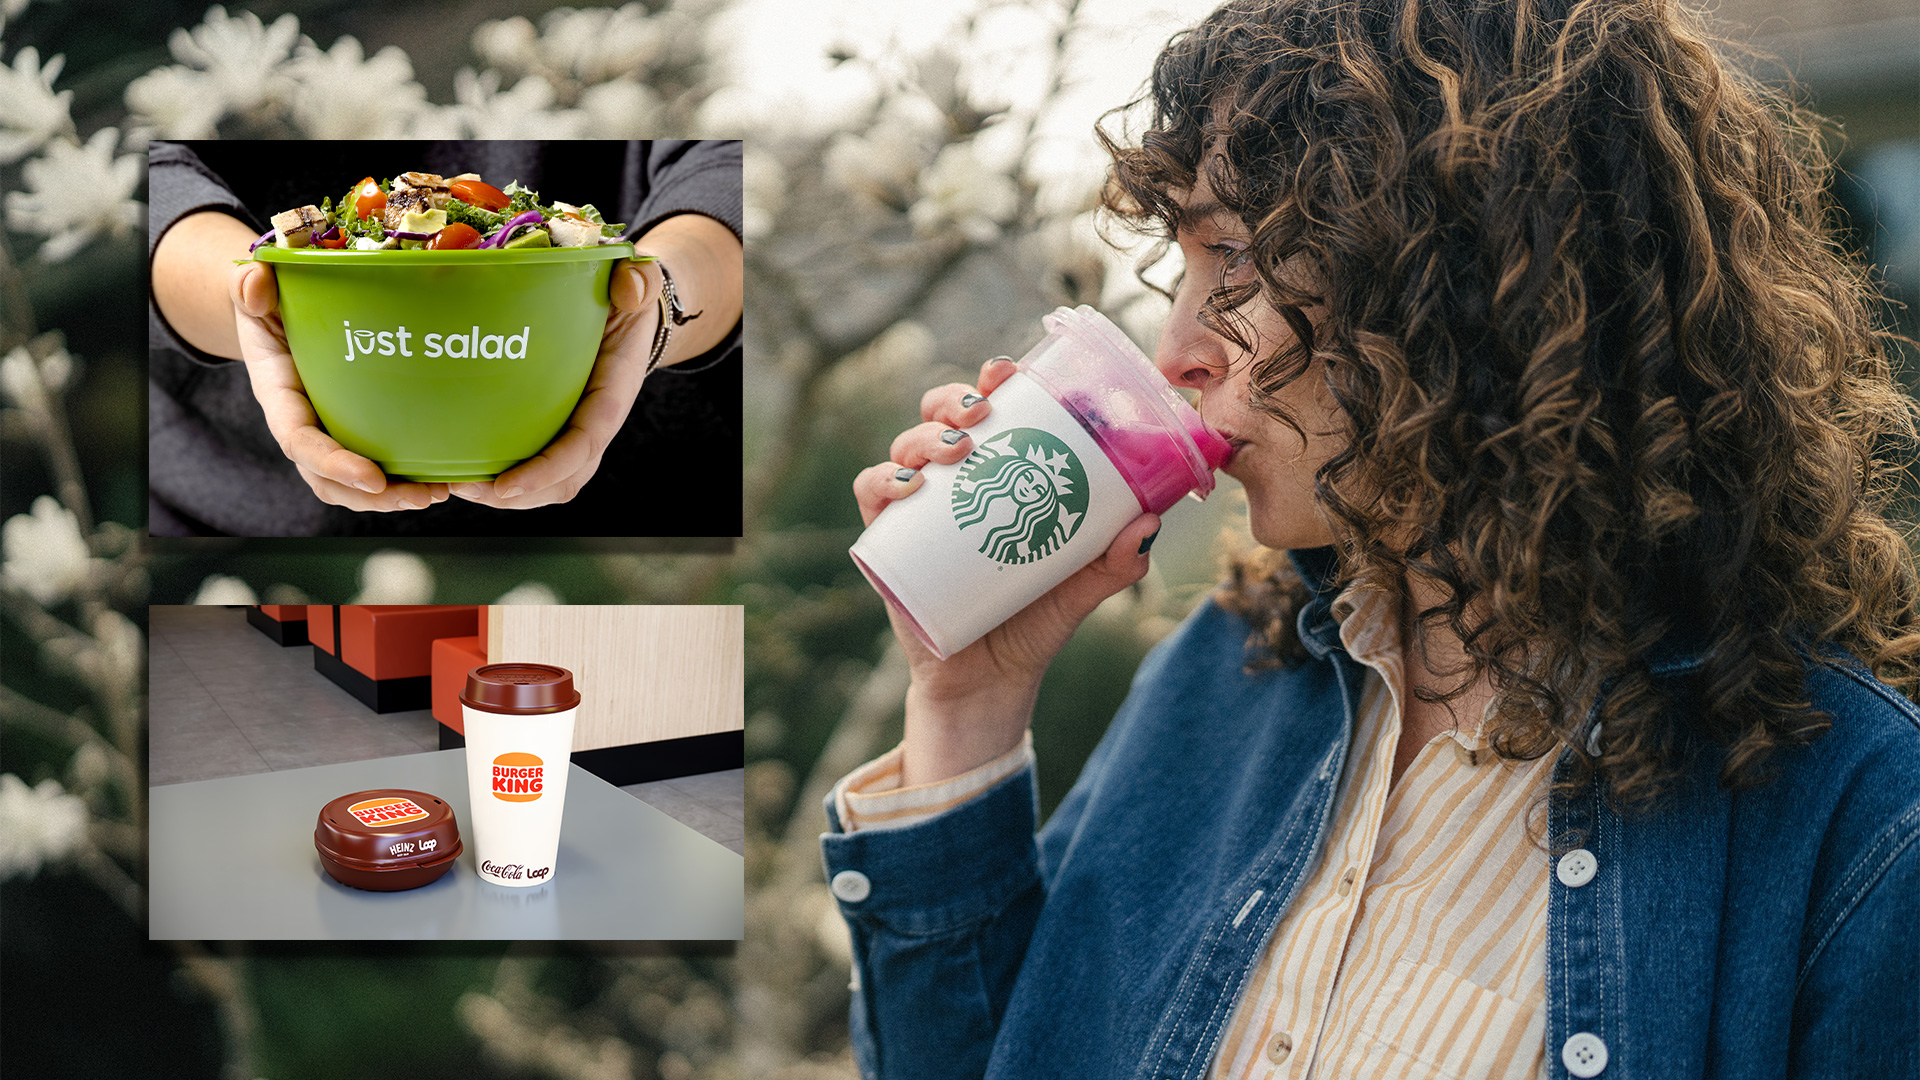 a woman drinking out of a starbucks cup on the right and someone holding a just salad container on the top left and reusable burger king containers on the bottom left